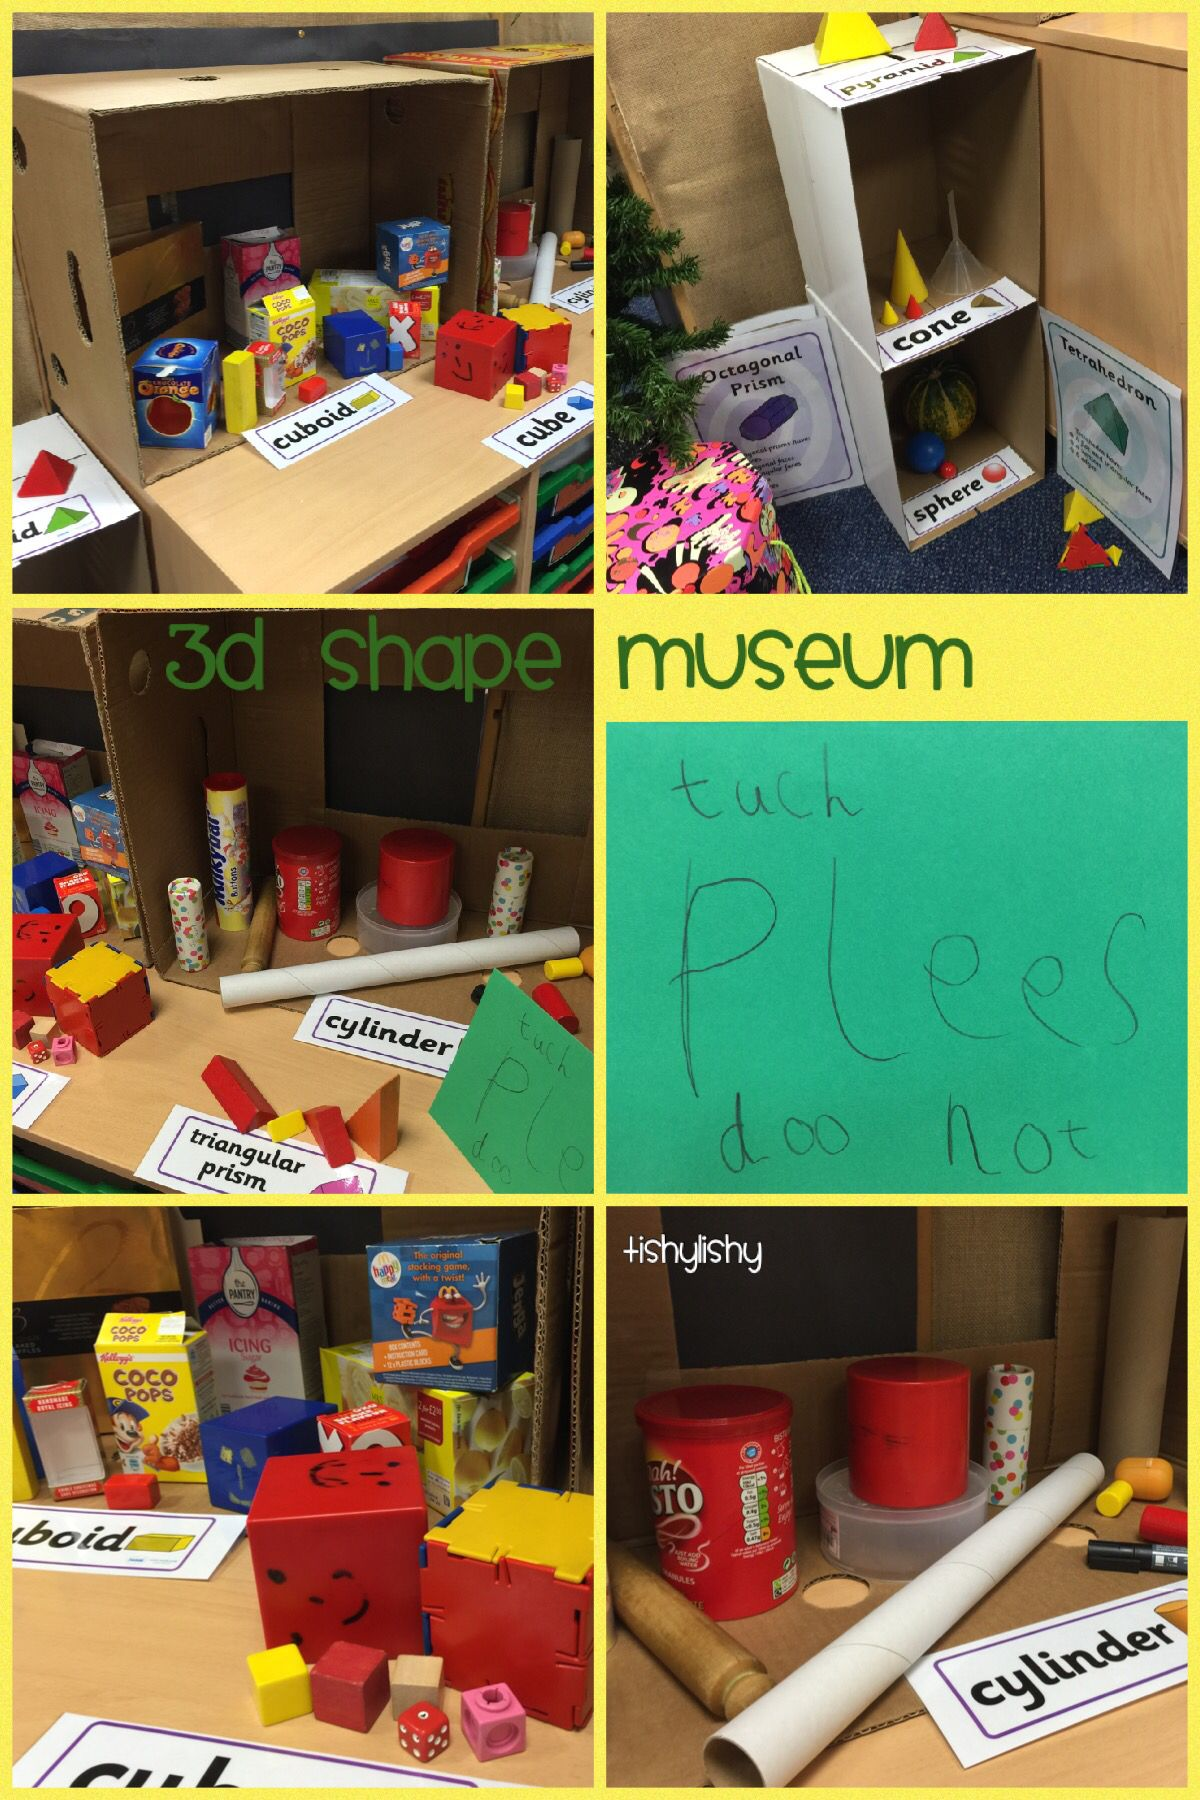 Our 3d Shape Museum